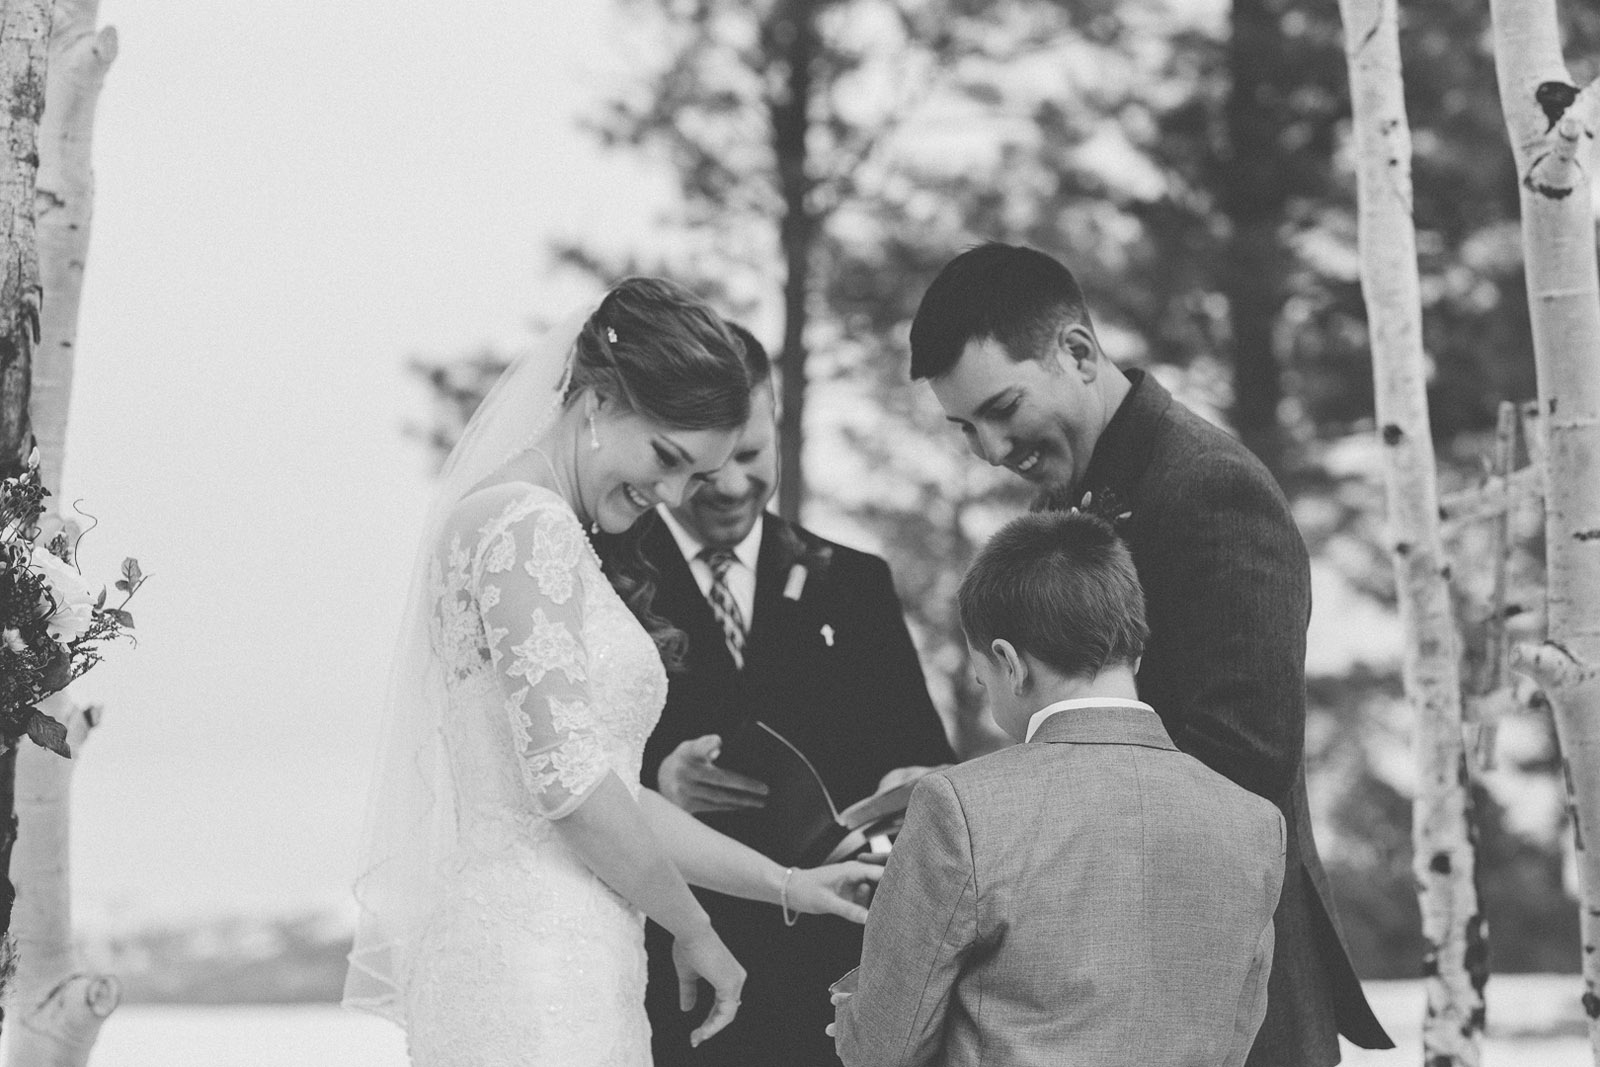 116-wedding-ceremony-in-pagosa-springs-wedding-photographer-snow-winter-wedding